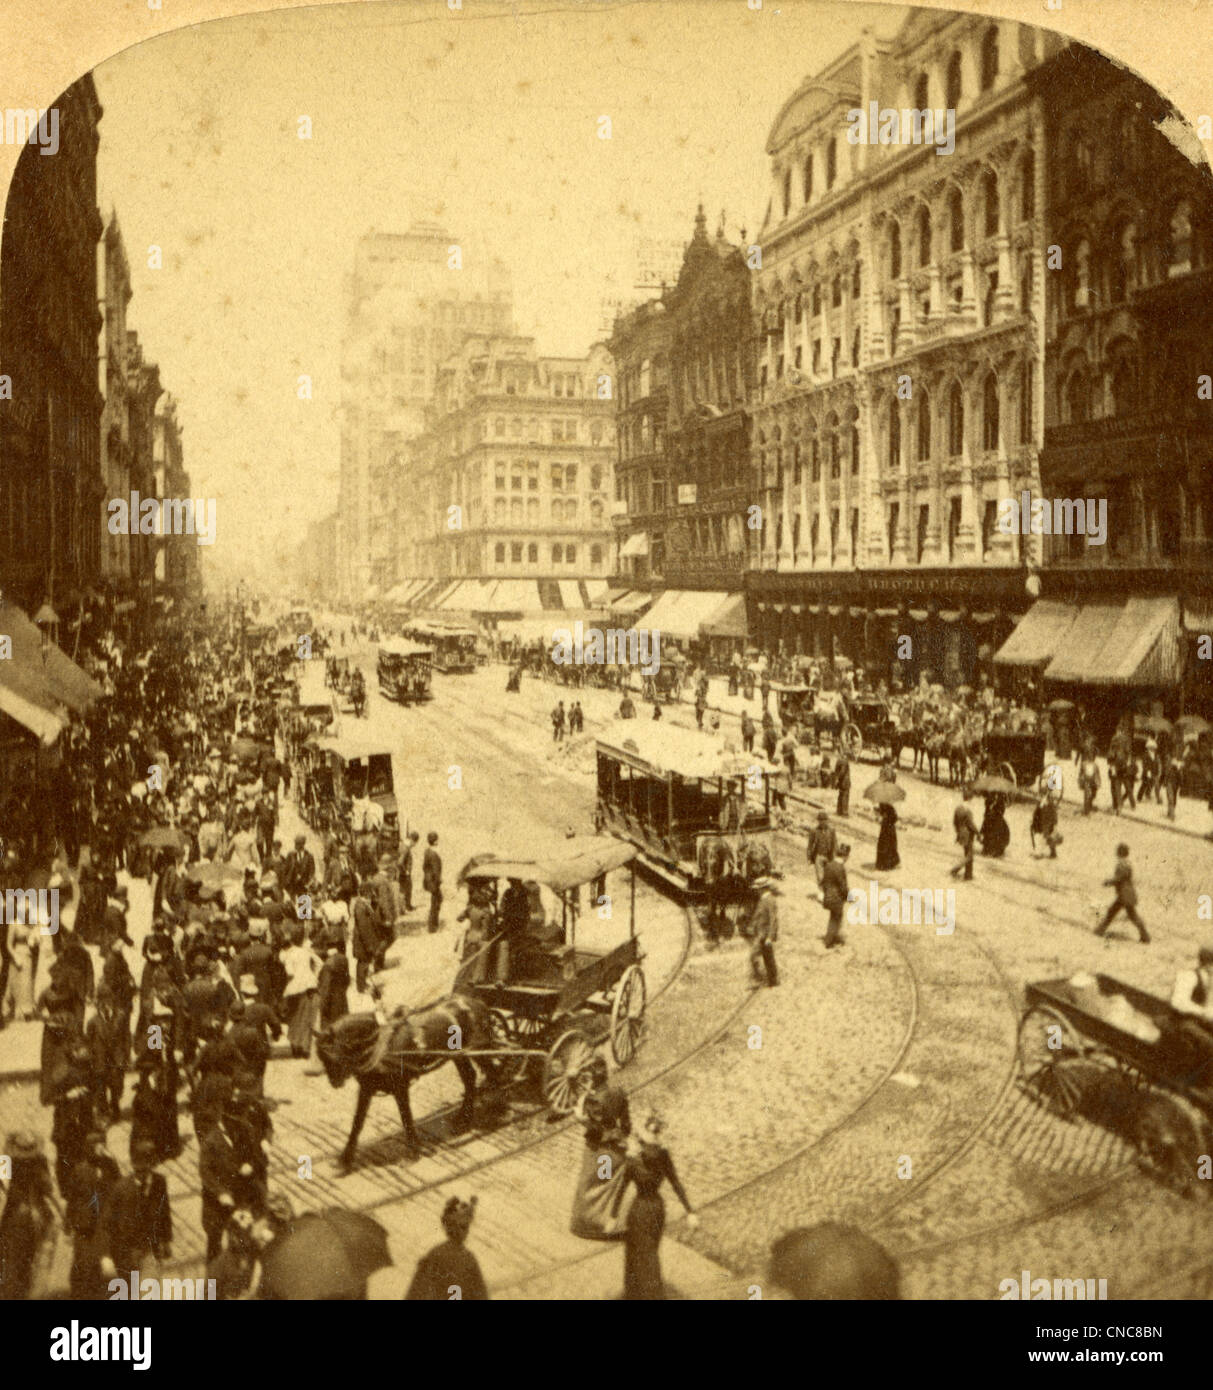 Circa 1890s stereoview image, State Street in Chicago, Illinois. - Stock Image